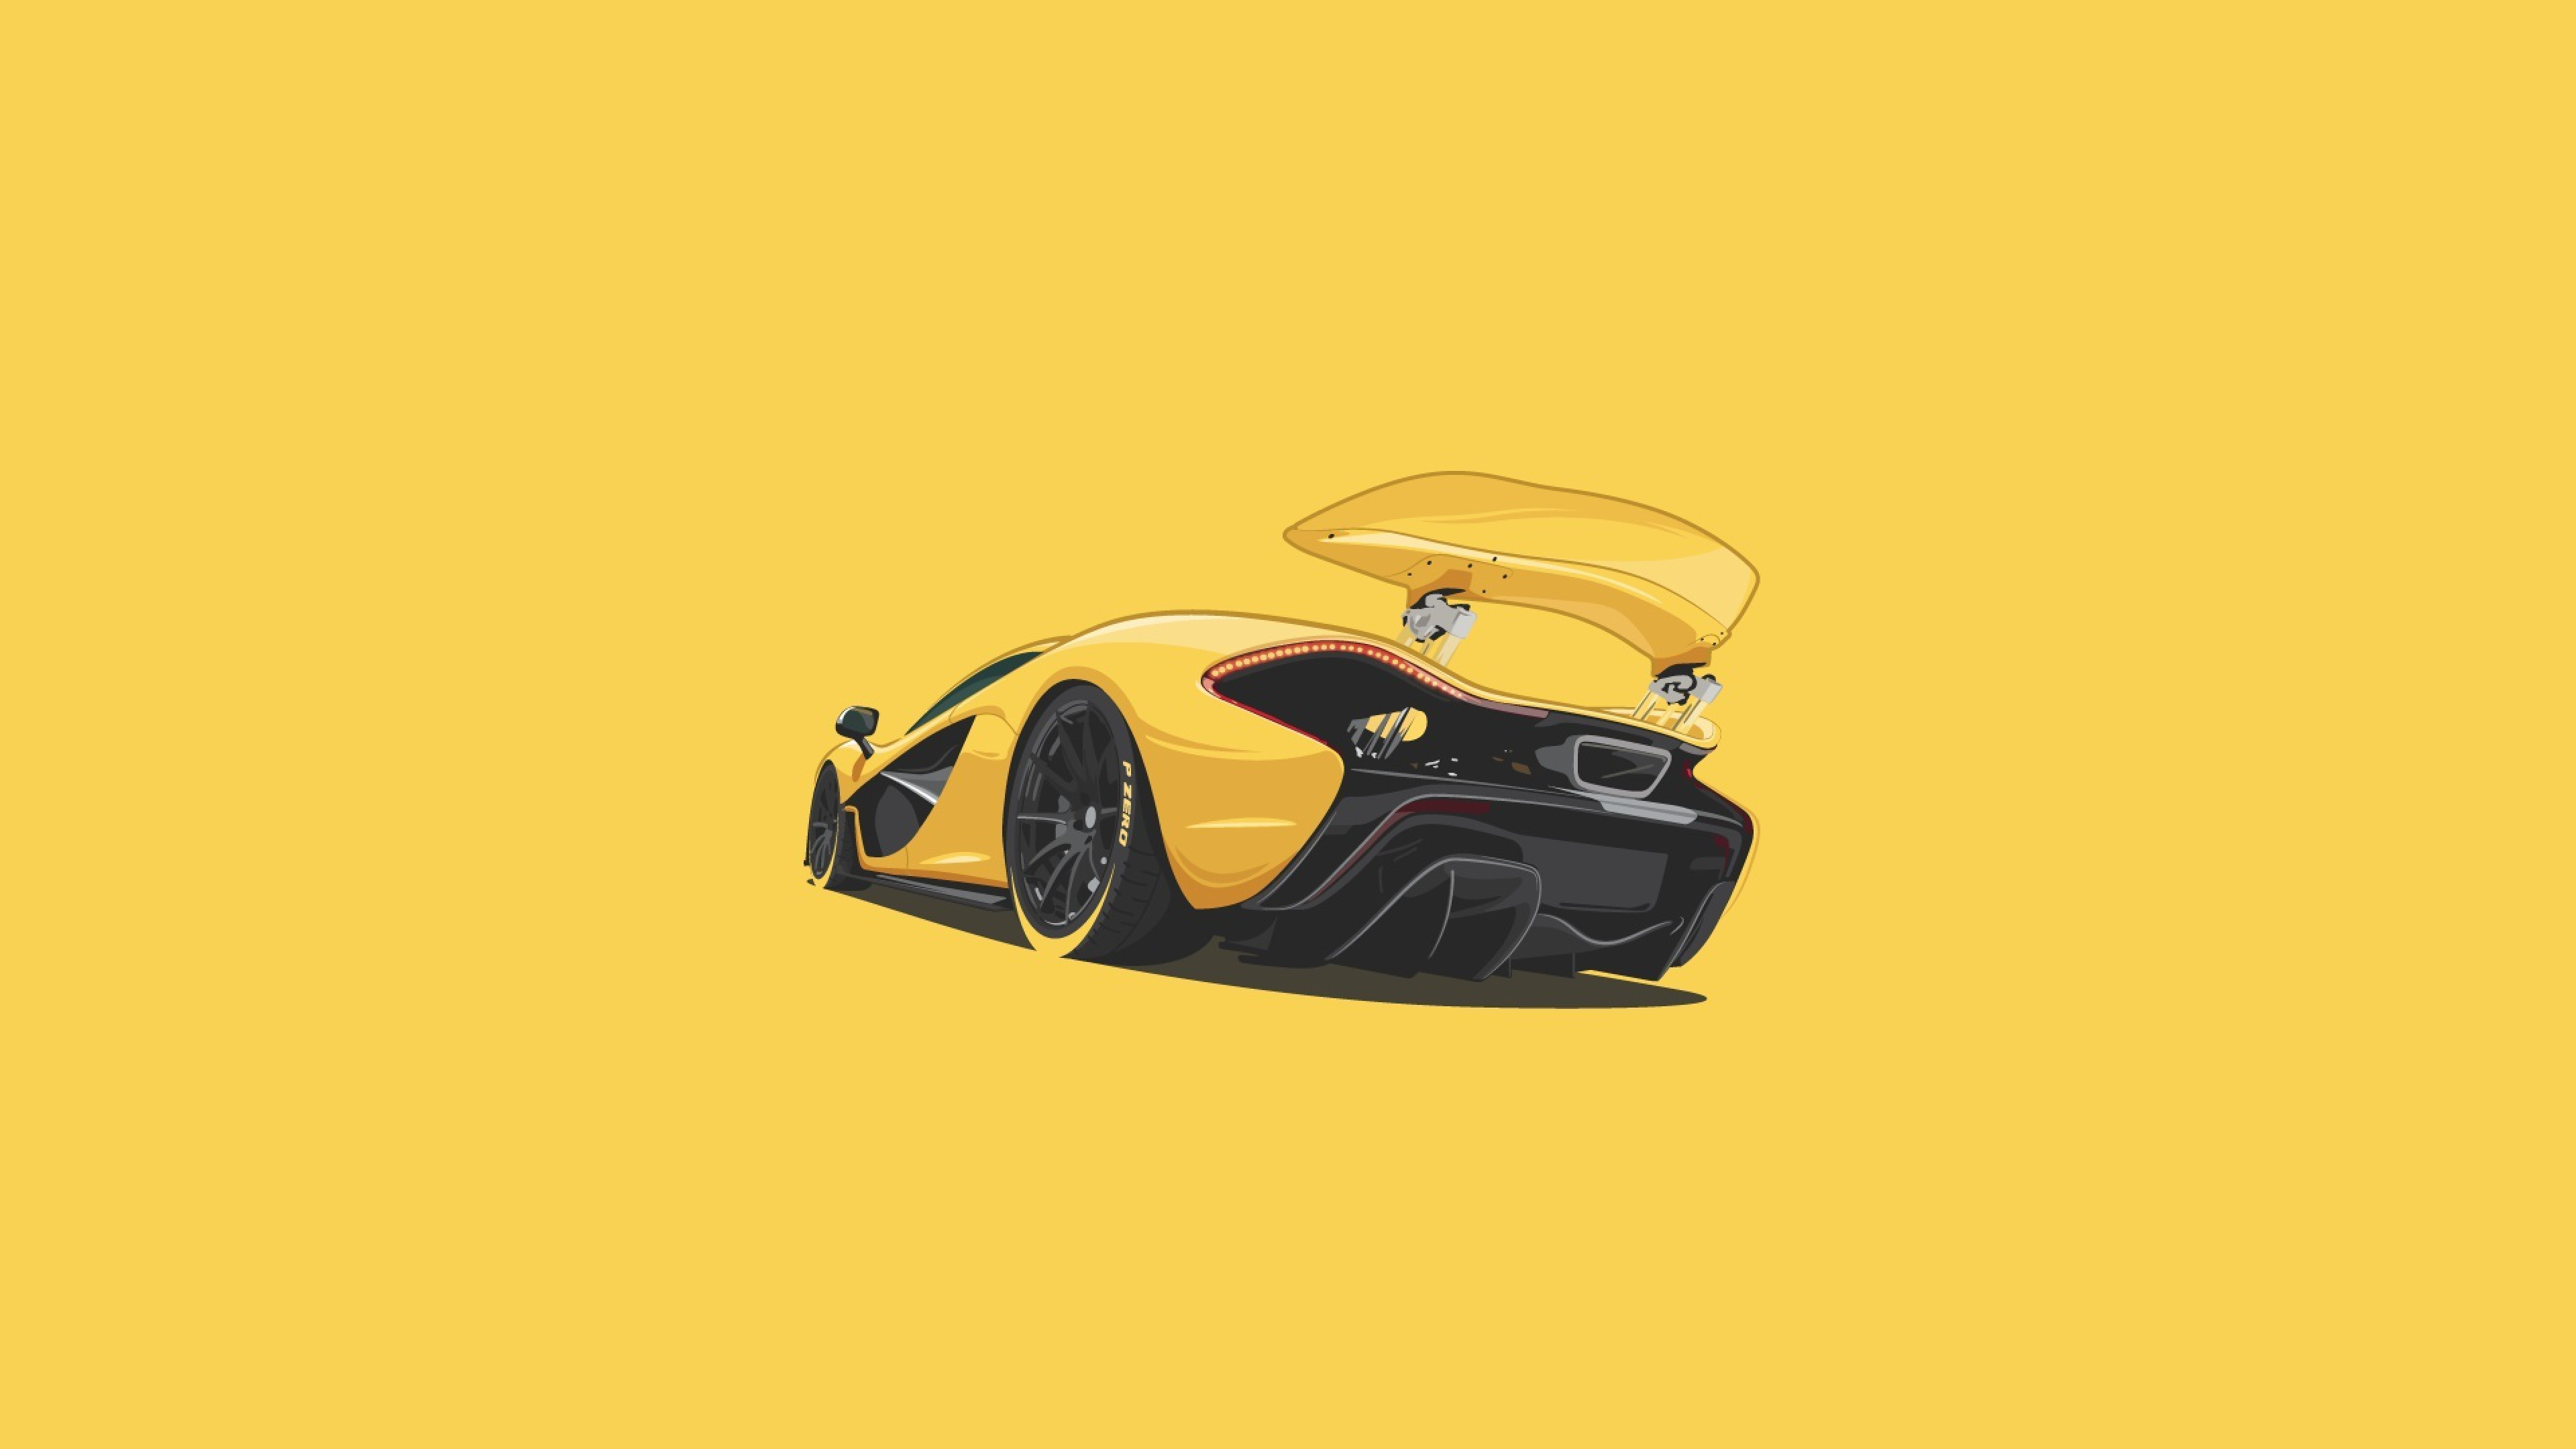 Mclaren P1 Minimalism, HD Artist, 4k Wallpapers, Images, Backgrounds, Photos and Pictures